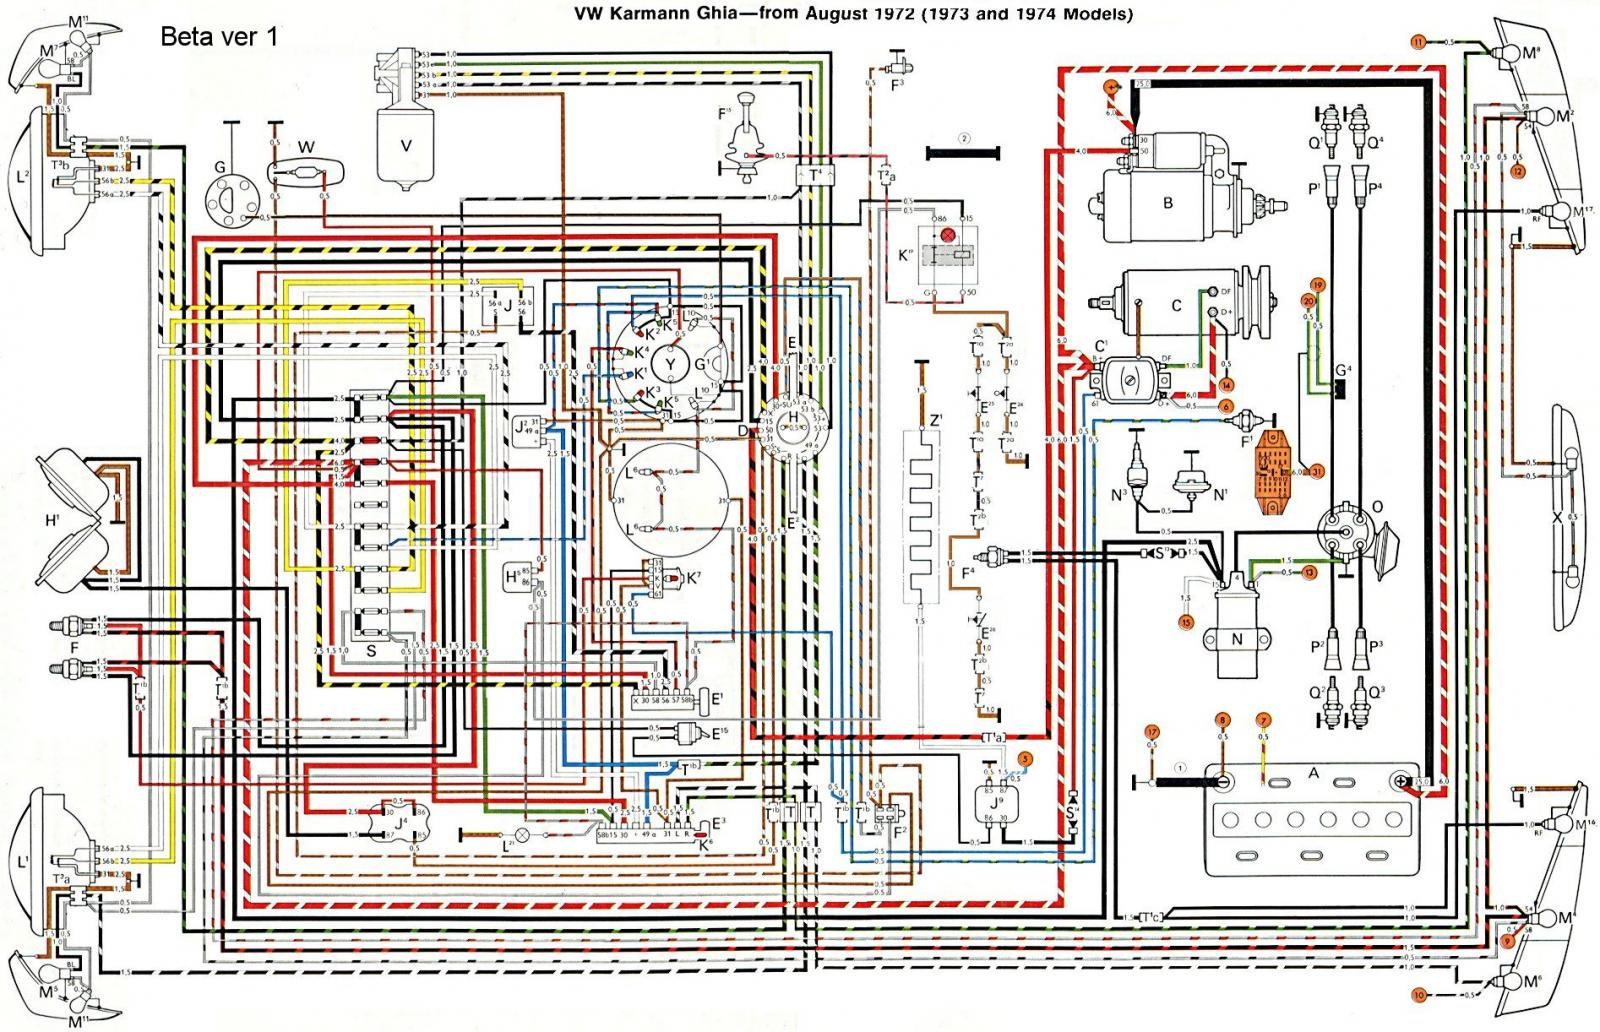 1188328 porsche 914 wiring diagram & porsche 356 t5 wiring diagram fuse box diagram 1975 porsche 914 at crackthecode.co